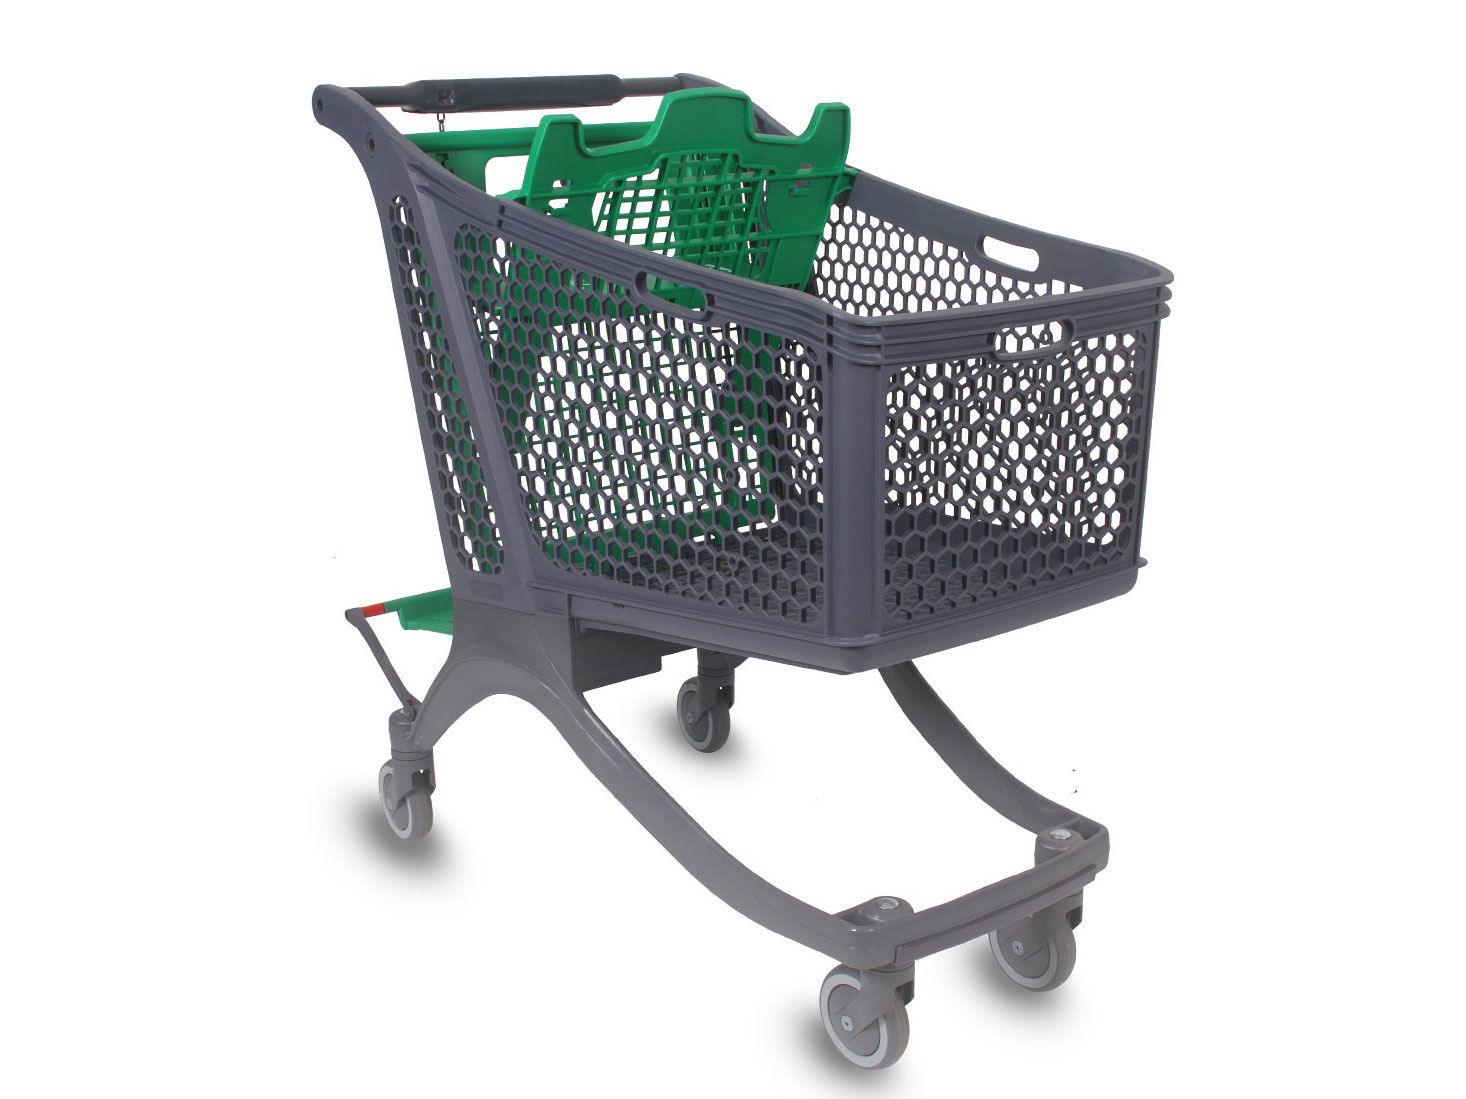 P180 plastic shopping cart , a comfortable and functional design of the Spanish company Polycart